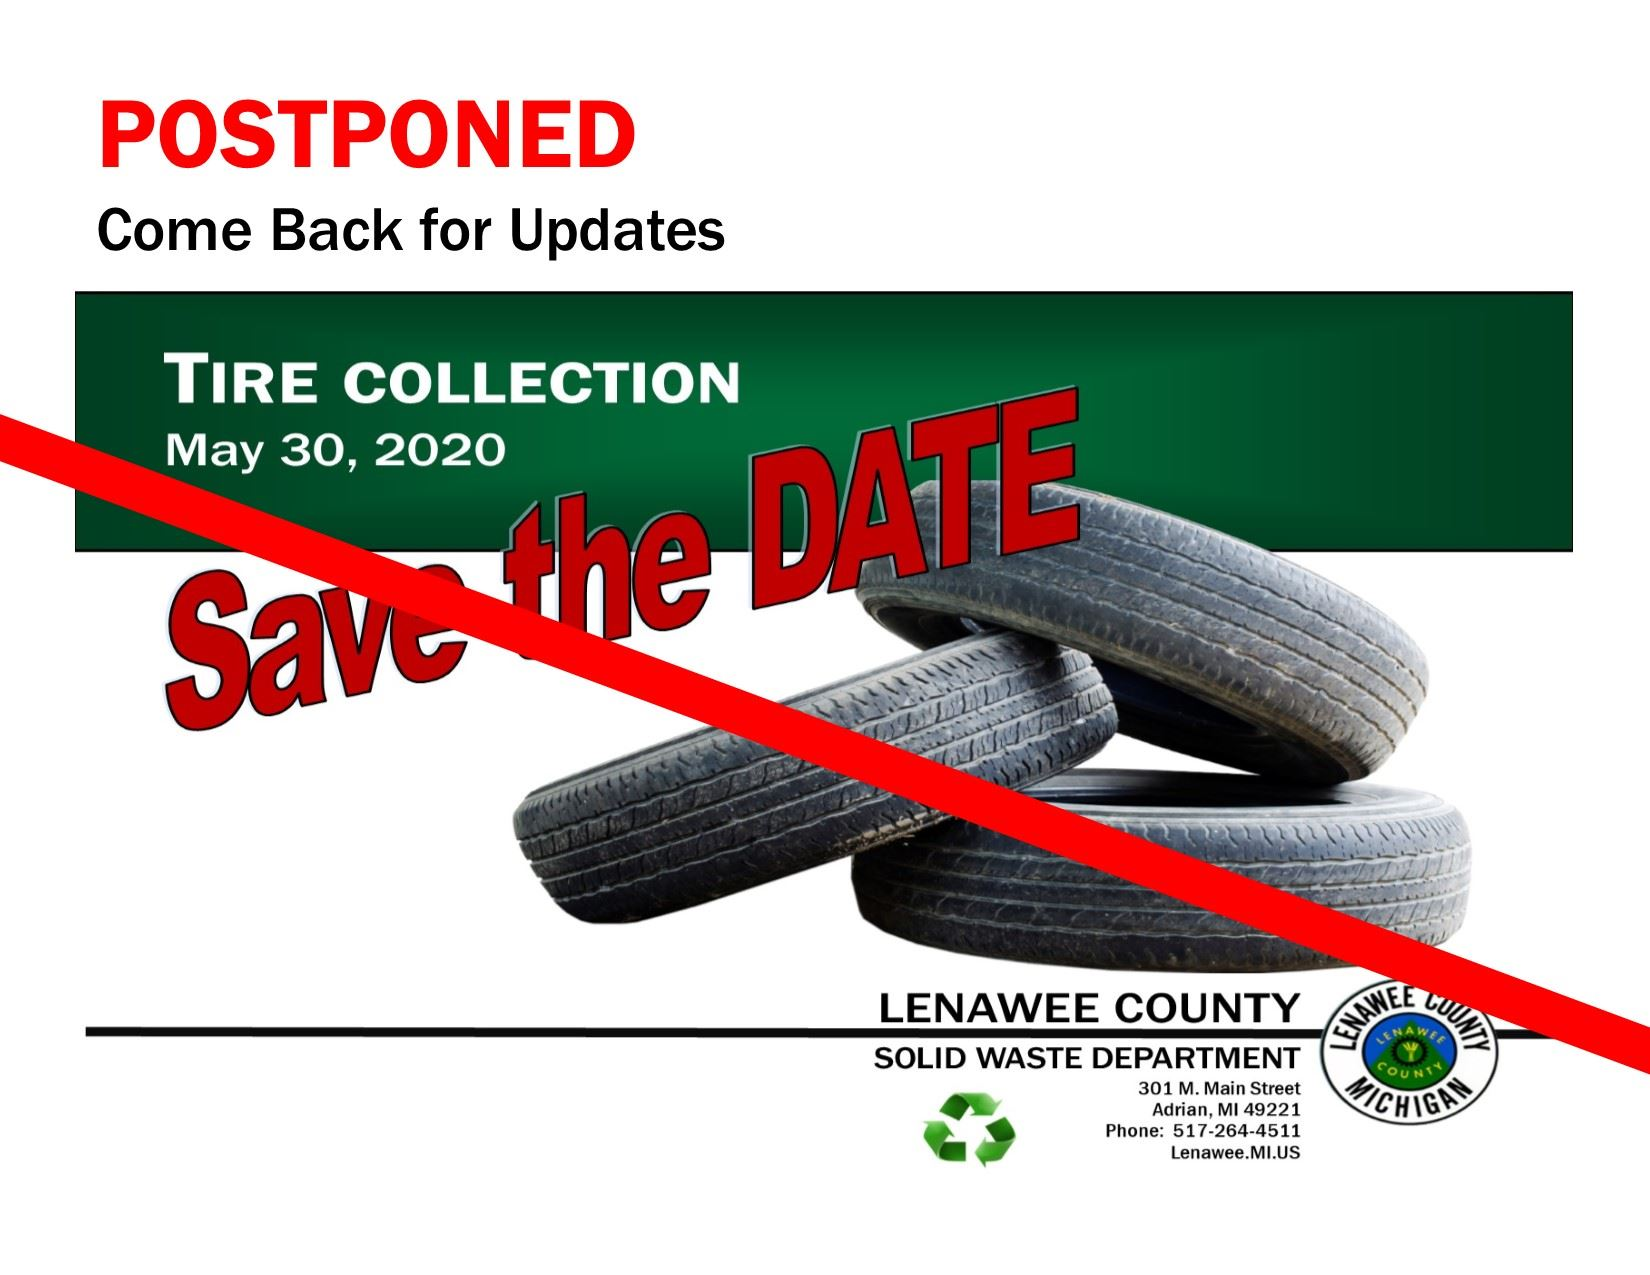 Tire Collection Postponed